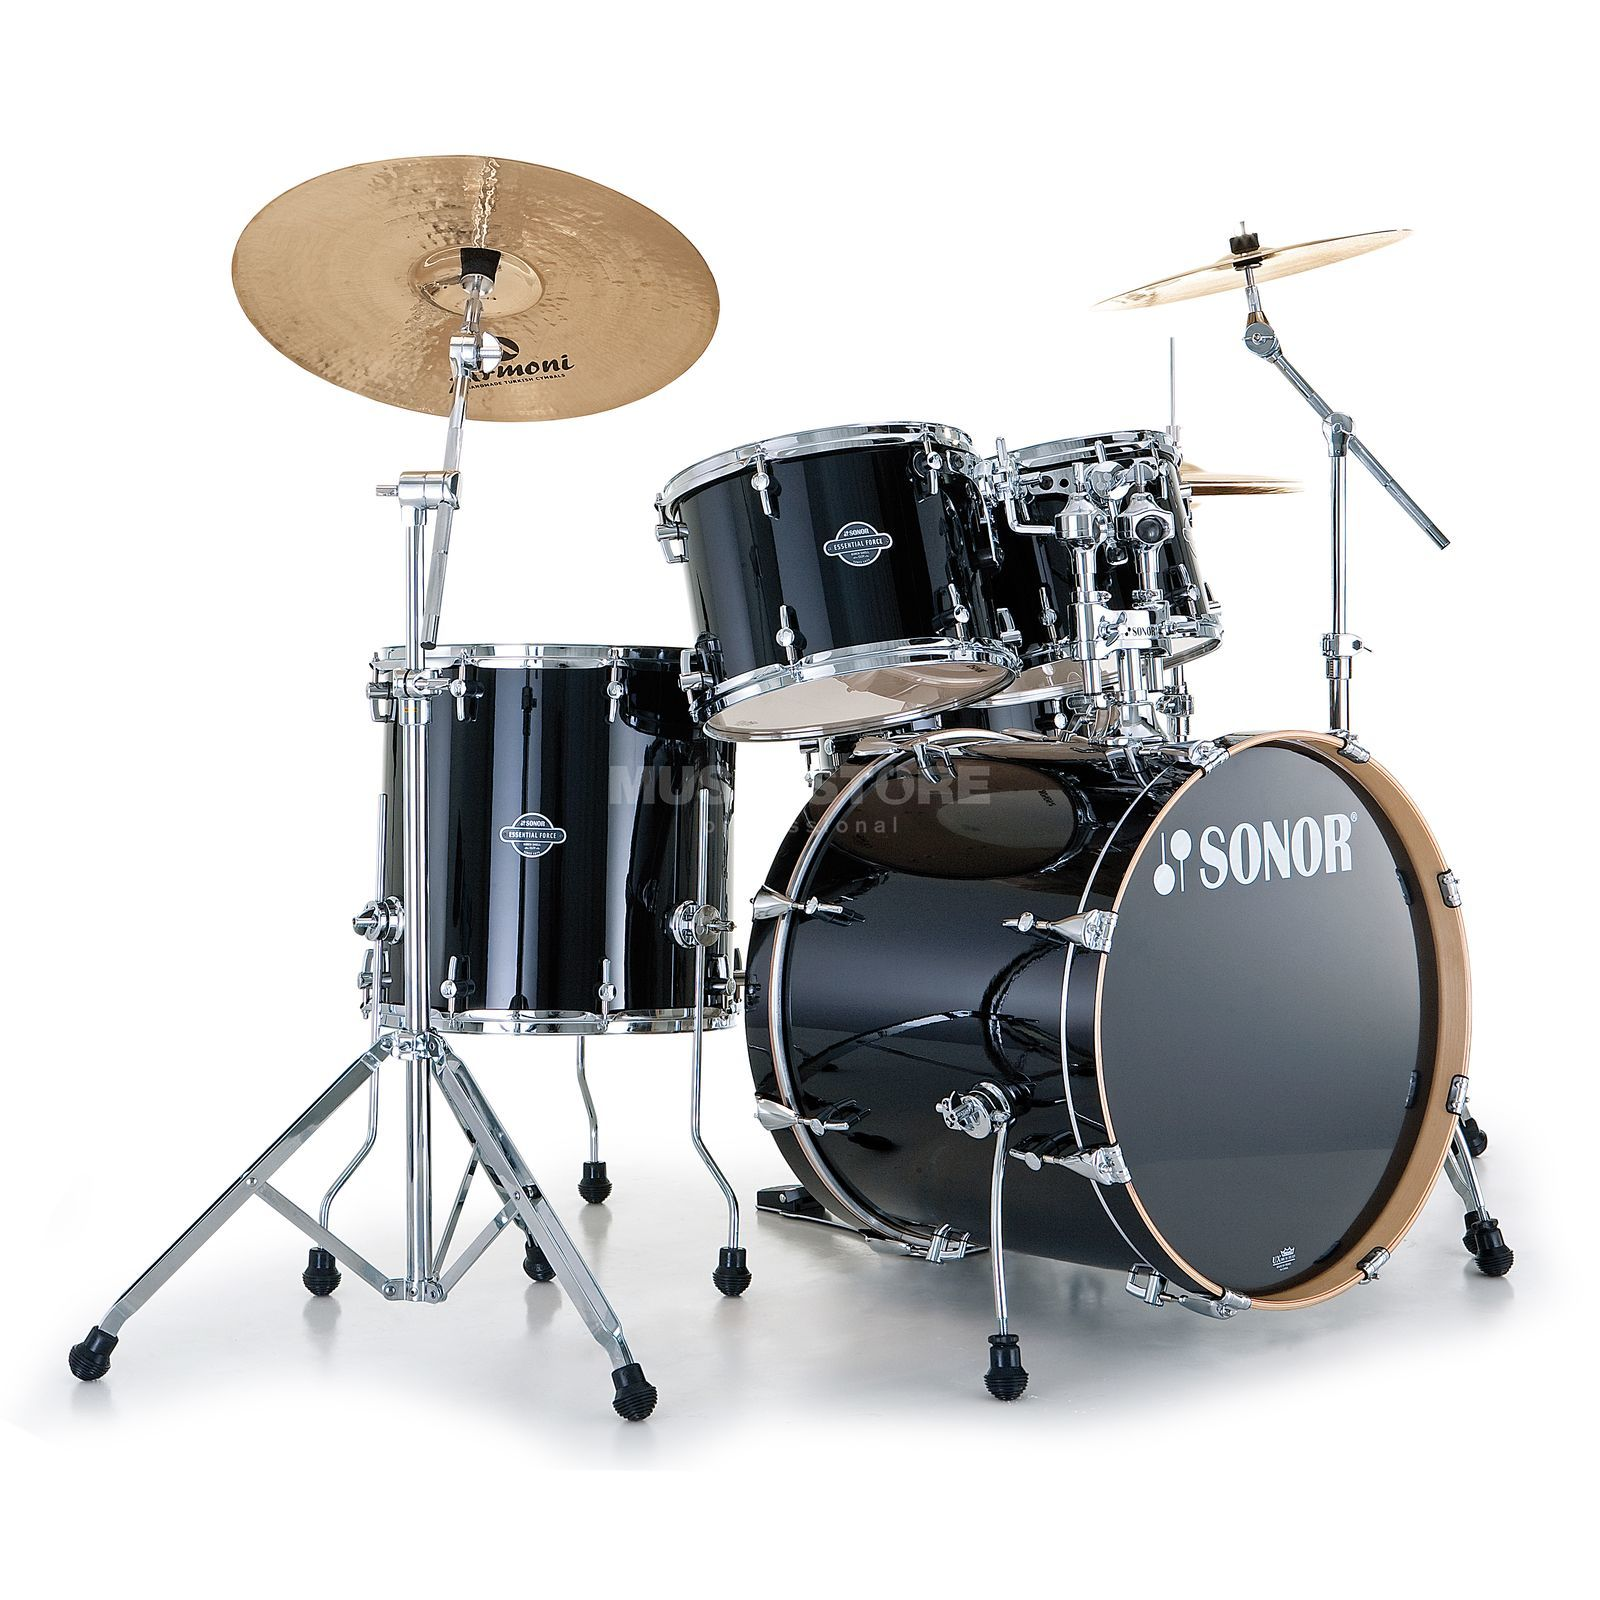 Sonor Essential voorce Stage 3, Piano zwart #40 Productafbeelding